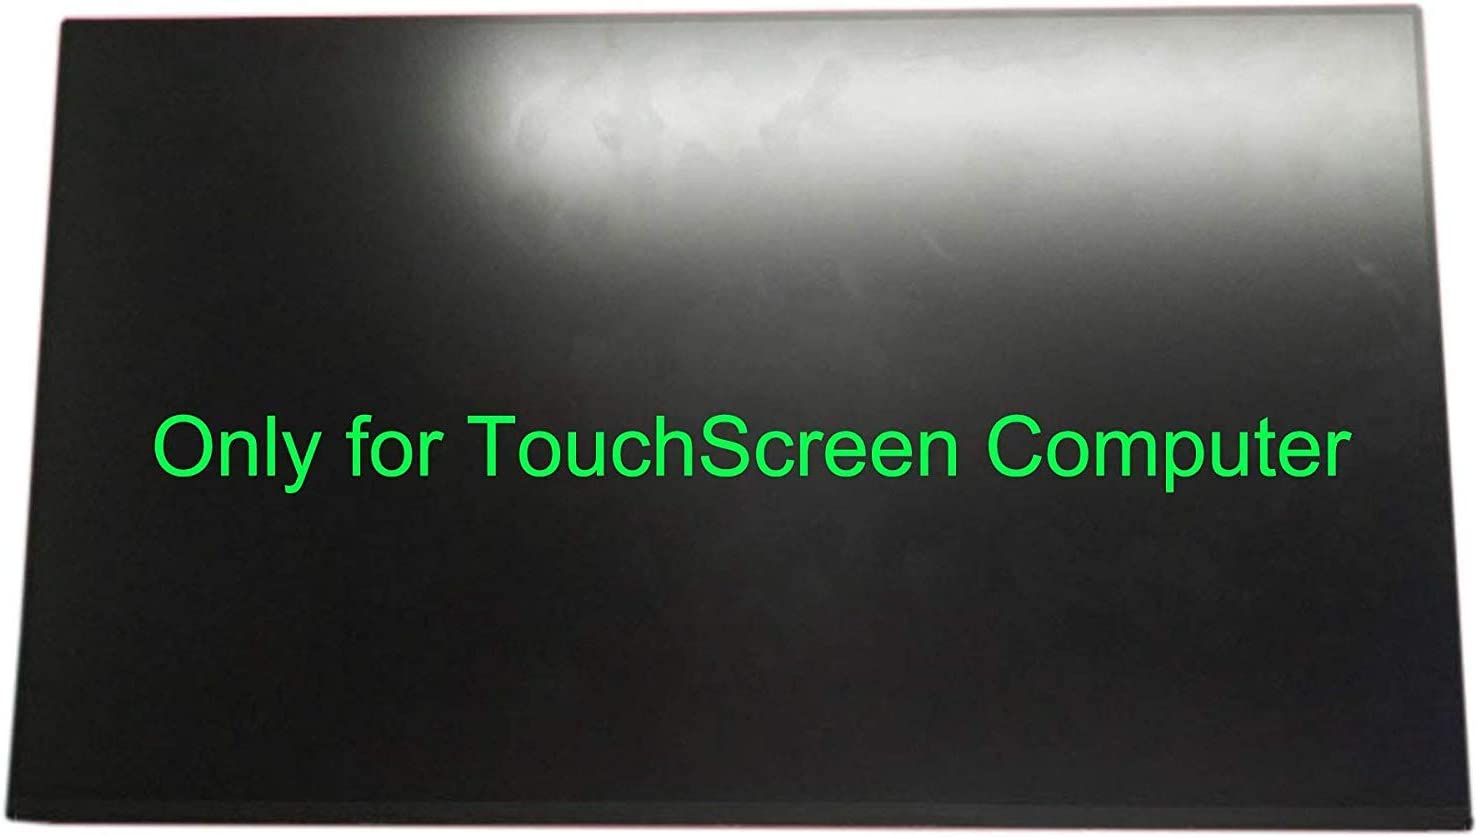 "Krenew 23.0"" Touch Screen Replacement LCD LED Display Repair Panel 1920x1080 for Lenovo Ideacentre AIO 520S-23IKU (Machine Type F0CU) f0cu000nus f0cu0022us f0cu006eus (Touchscreen)"